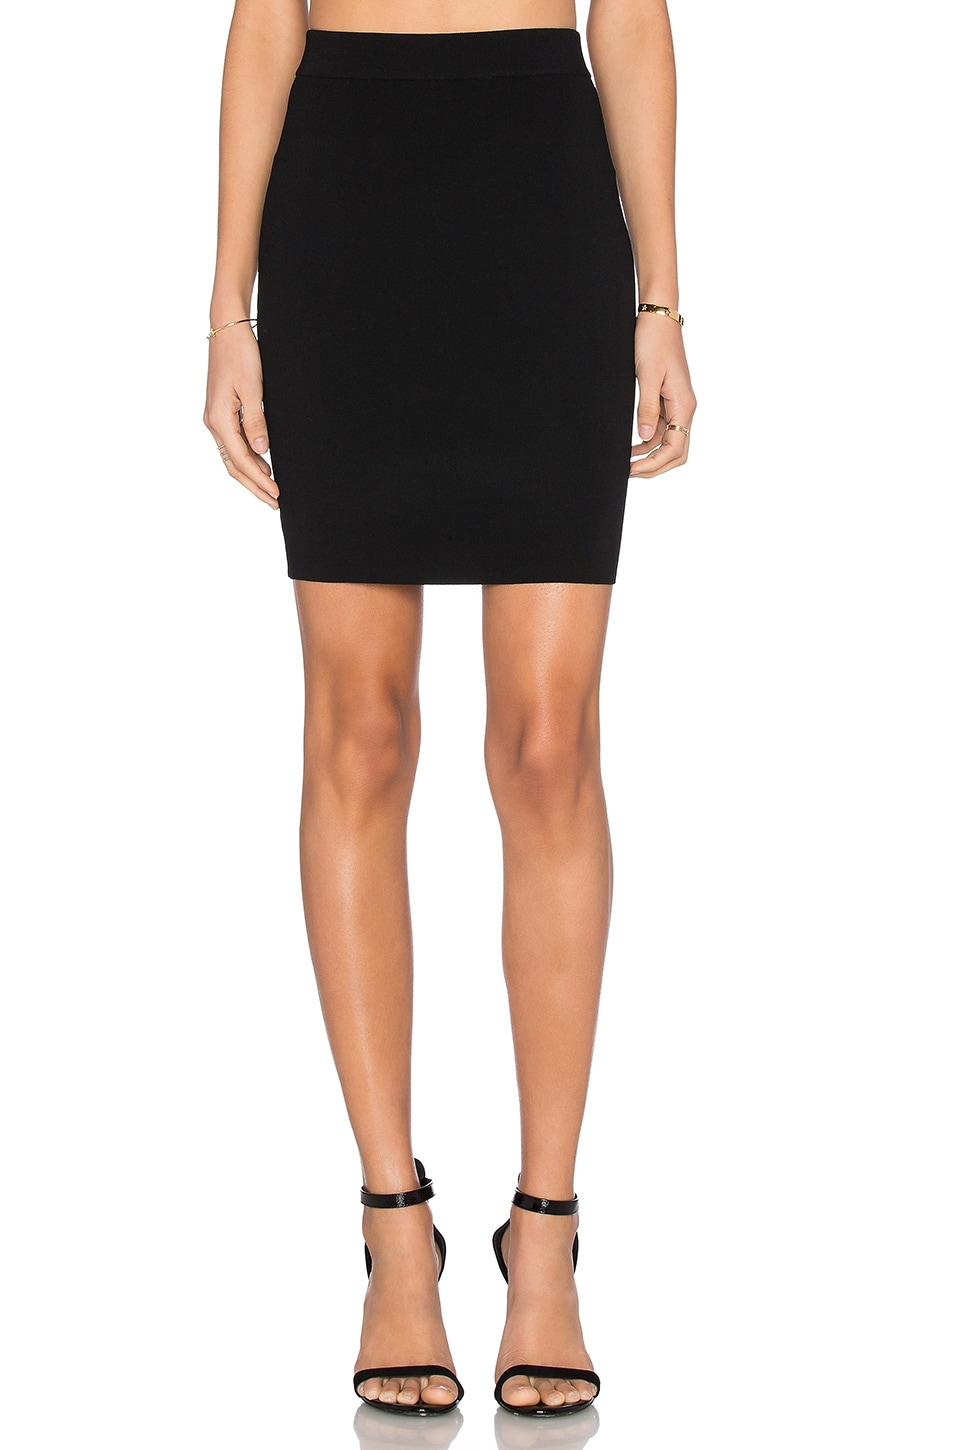 T by Alexander Wang Full Needle Knit Pencil Skirt in Black